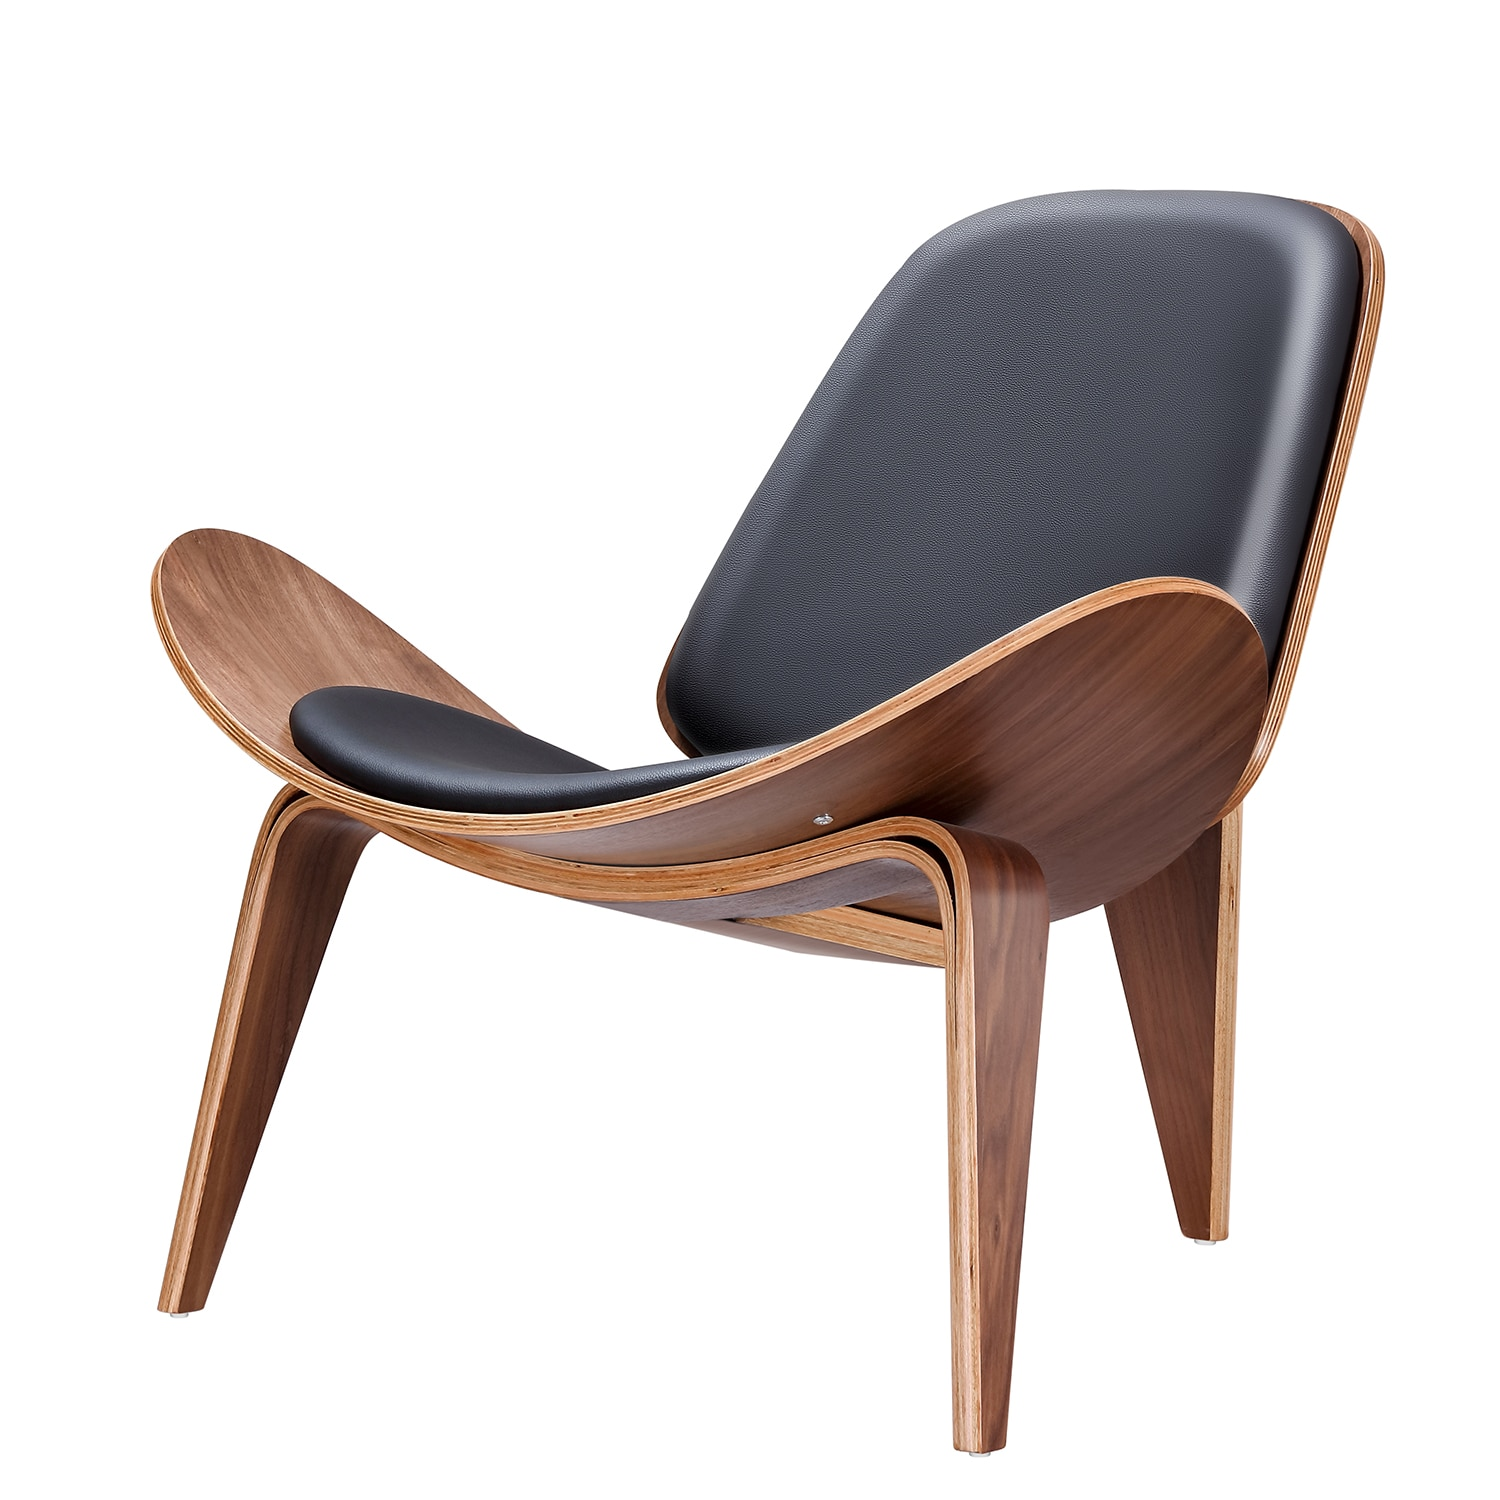 Furgle Replica Lounge Nordic Creative Simple Designer Single Sofa Chair Smile Airplane Shell Chair Dining Room Chairs